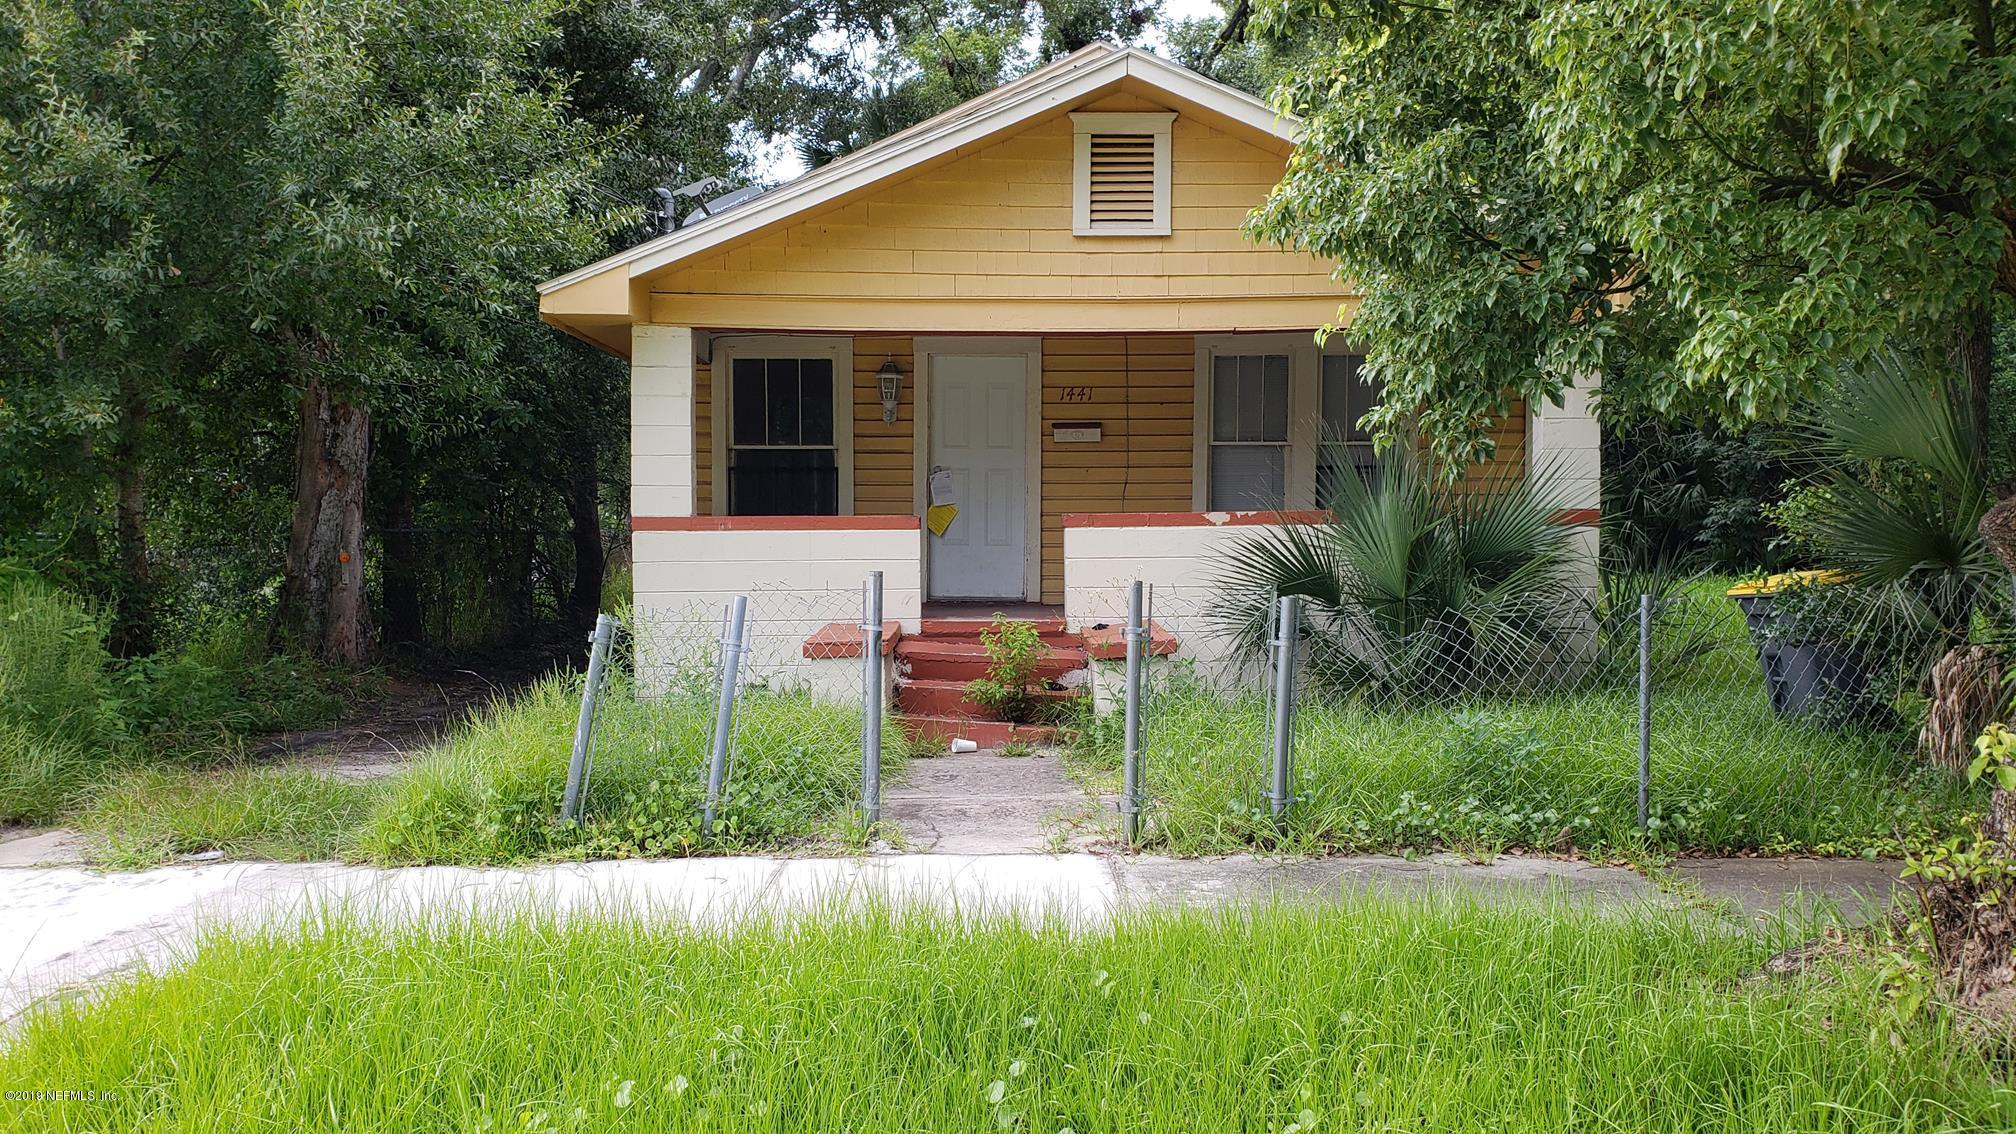 1441 8TH, JACKSONVILLE, FLORIDA 32209, 3 Bedrooms Bedrooms, ,1 BathroomBathrooms,Residential,For sale,8TH,1025116